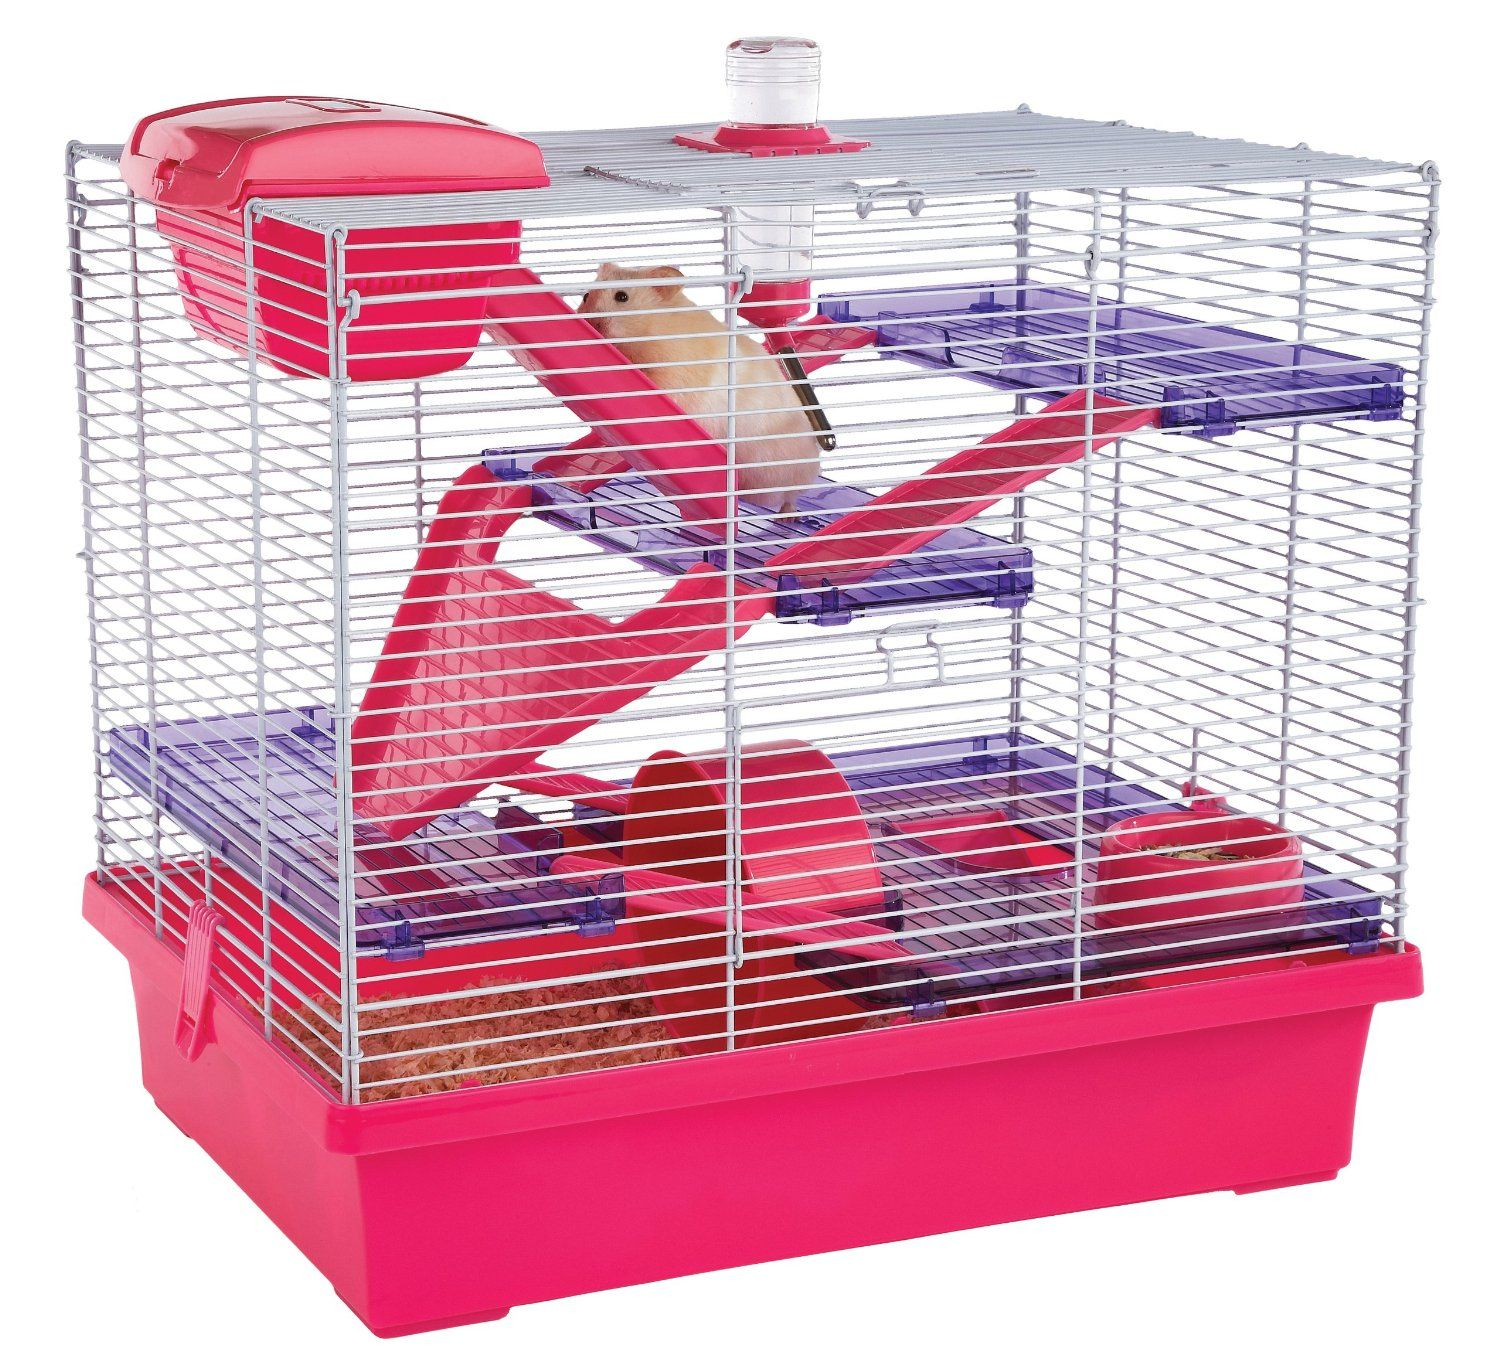 Dwarf Hamster Cages Uk Webnuggetz Com Hamster Cage Hamster House Small Pets